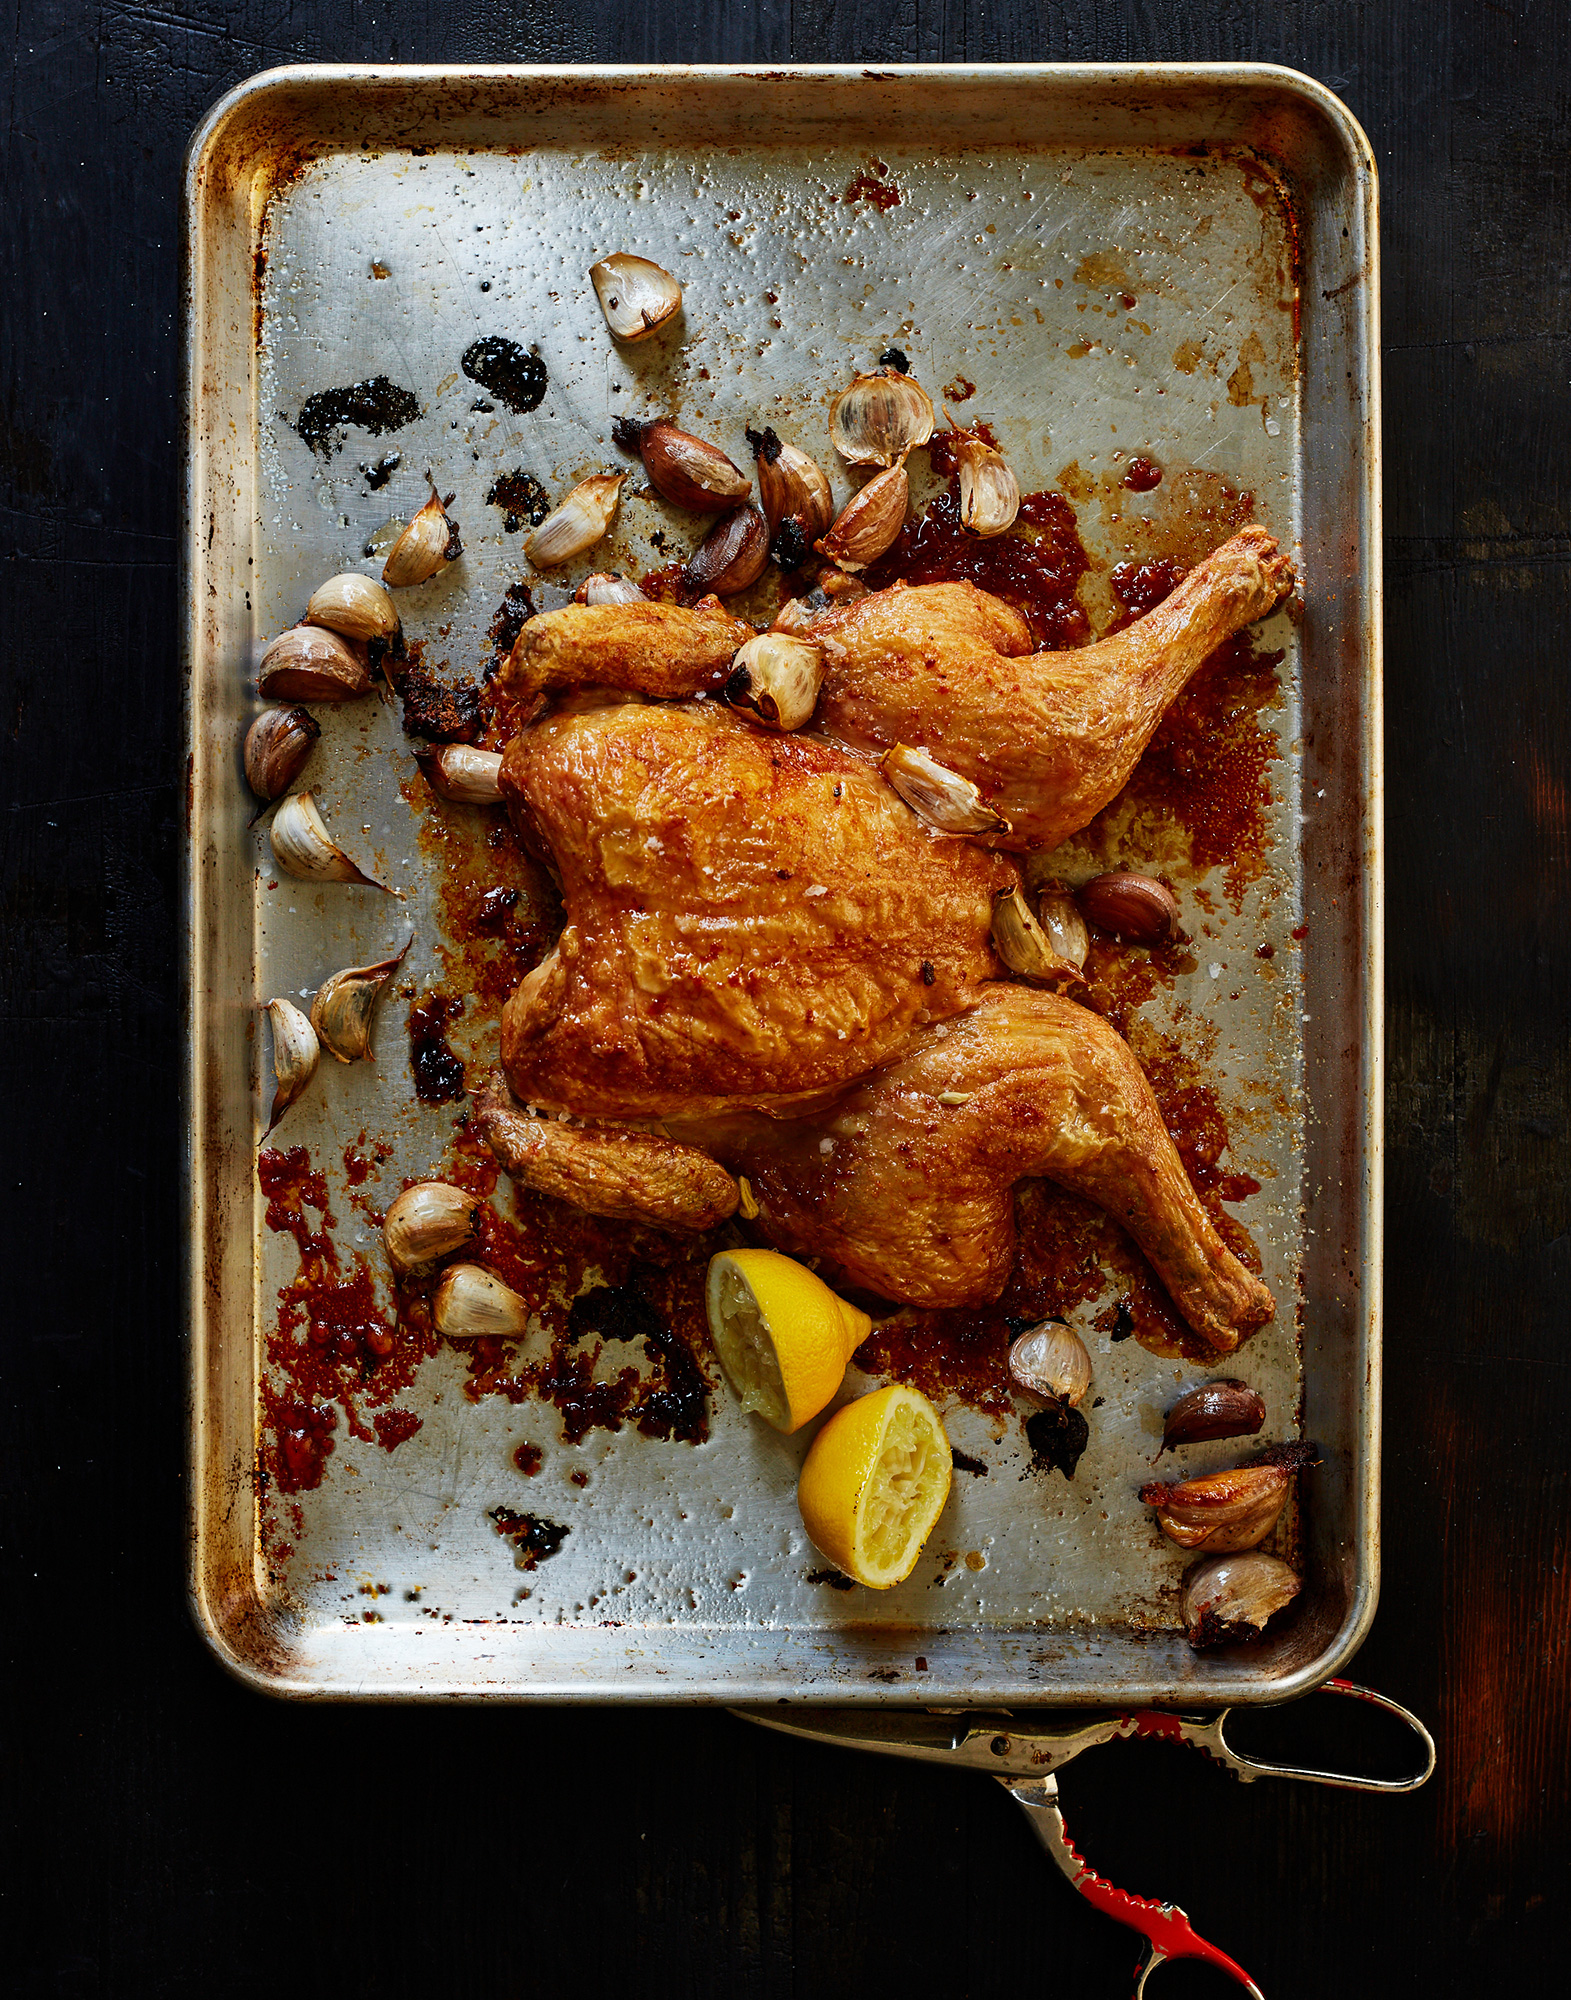 46_Spatchcocked_High_Heat_Roasted_Chicken_with_Garlic_J_Miller_0970